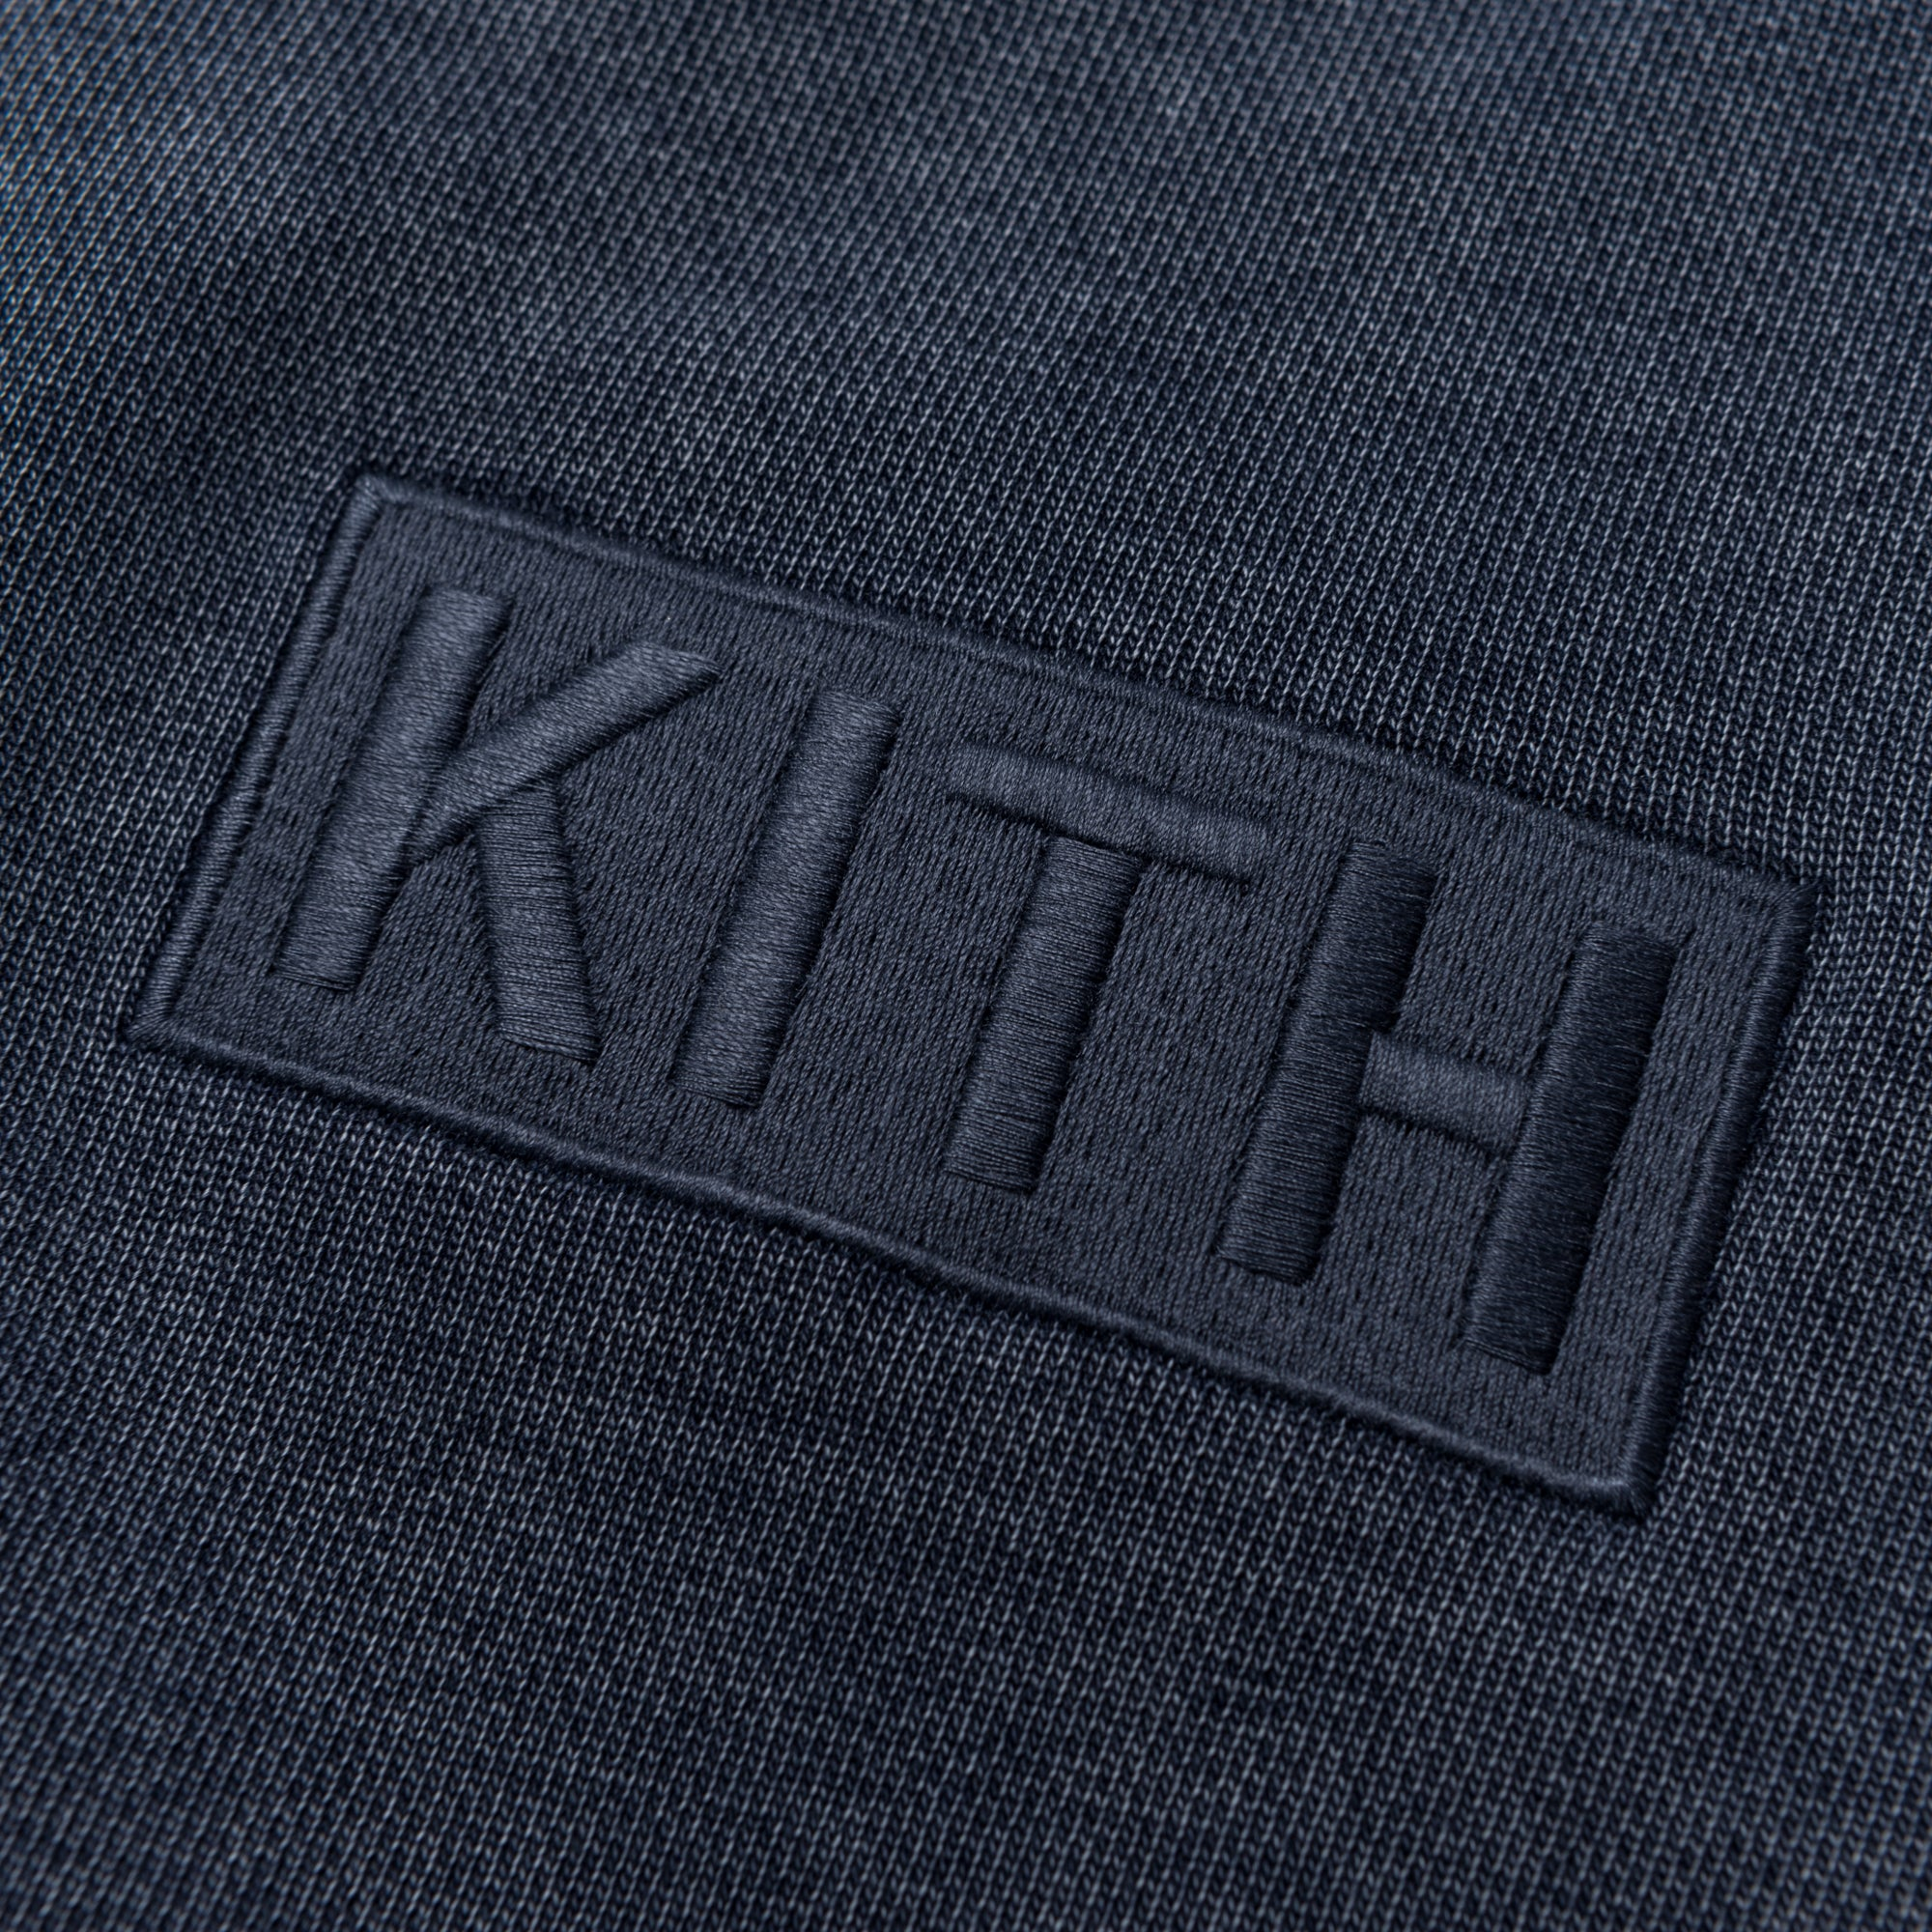 Kith Indigo Redfield Crewneck - Dark Indigo